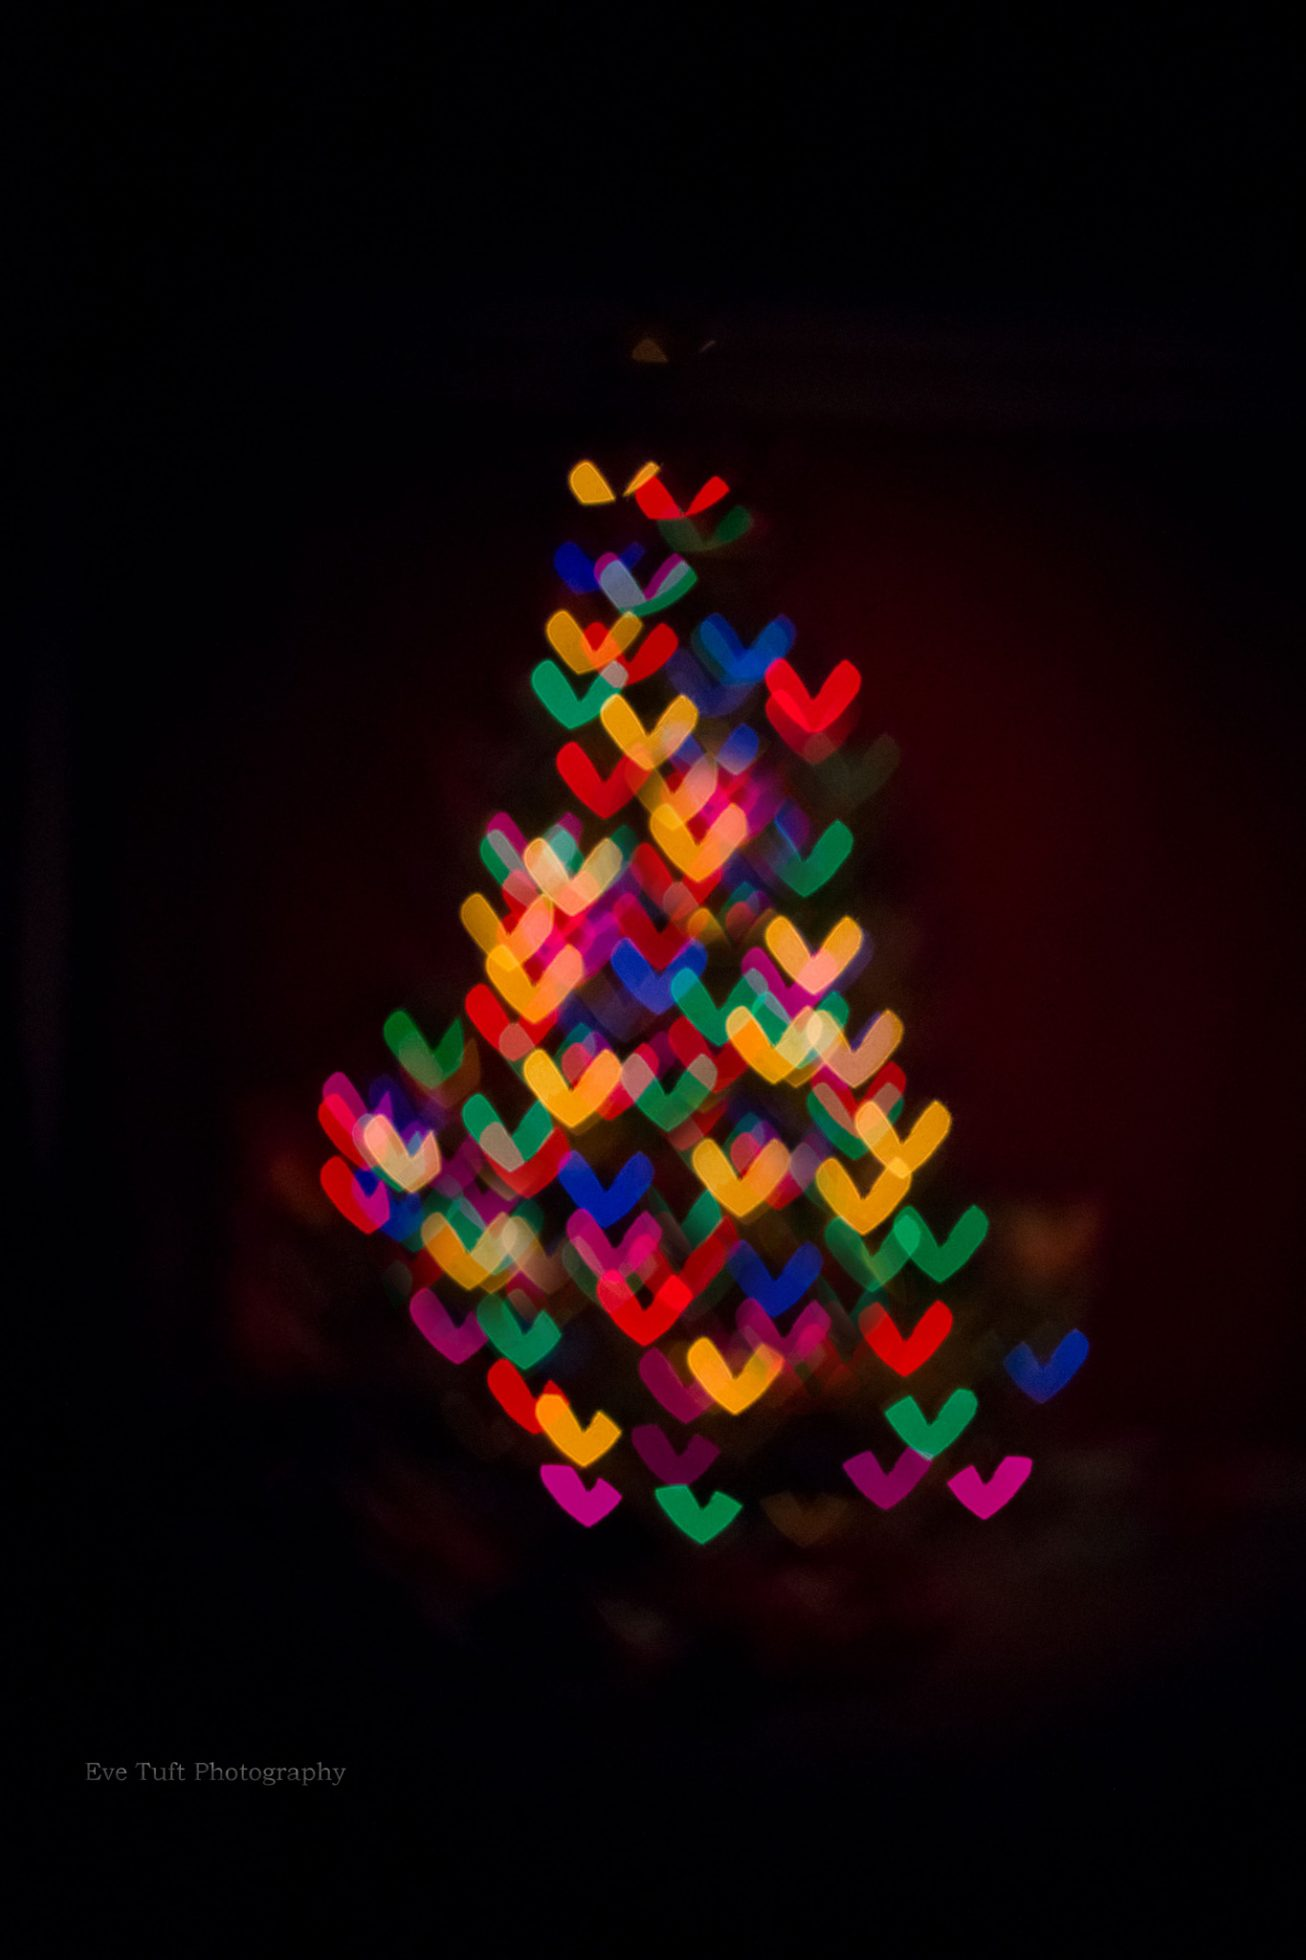 Iheart Christmas.I Heart Christmas Trees By Eve Tuft Photography For The